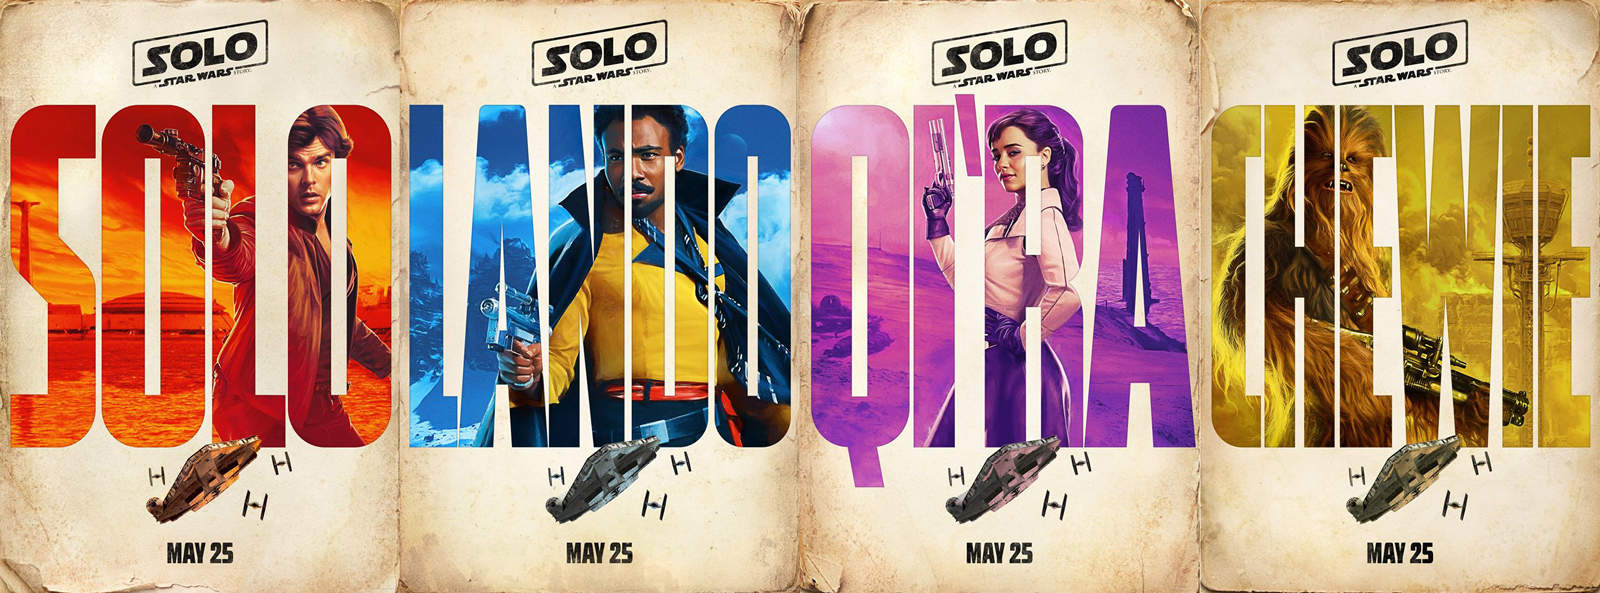 Solo posters 1